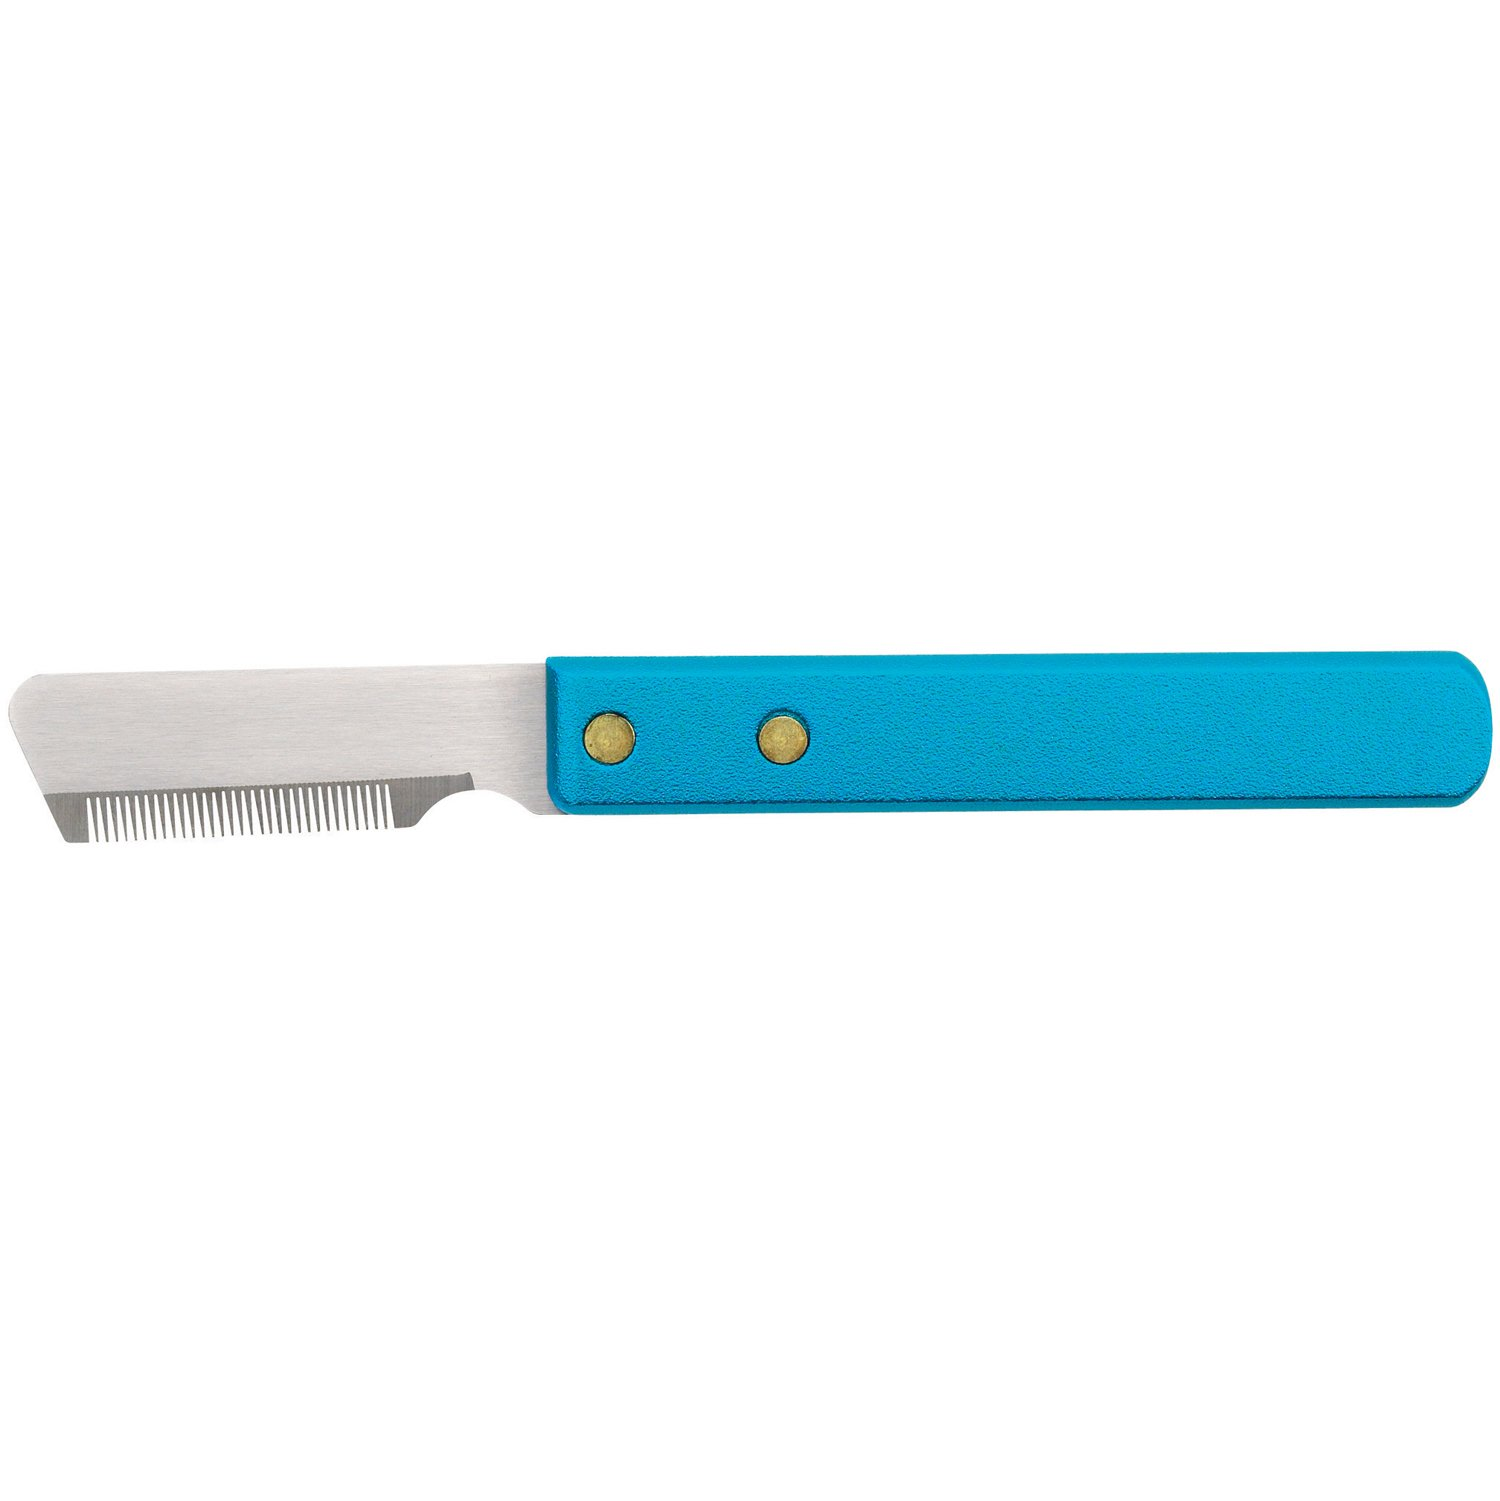 Master Grooming Tools Stripping Knives - Non-Slip Tools for Grooming Dogs - Fine, 6¾'' by Master Grooming